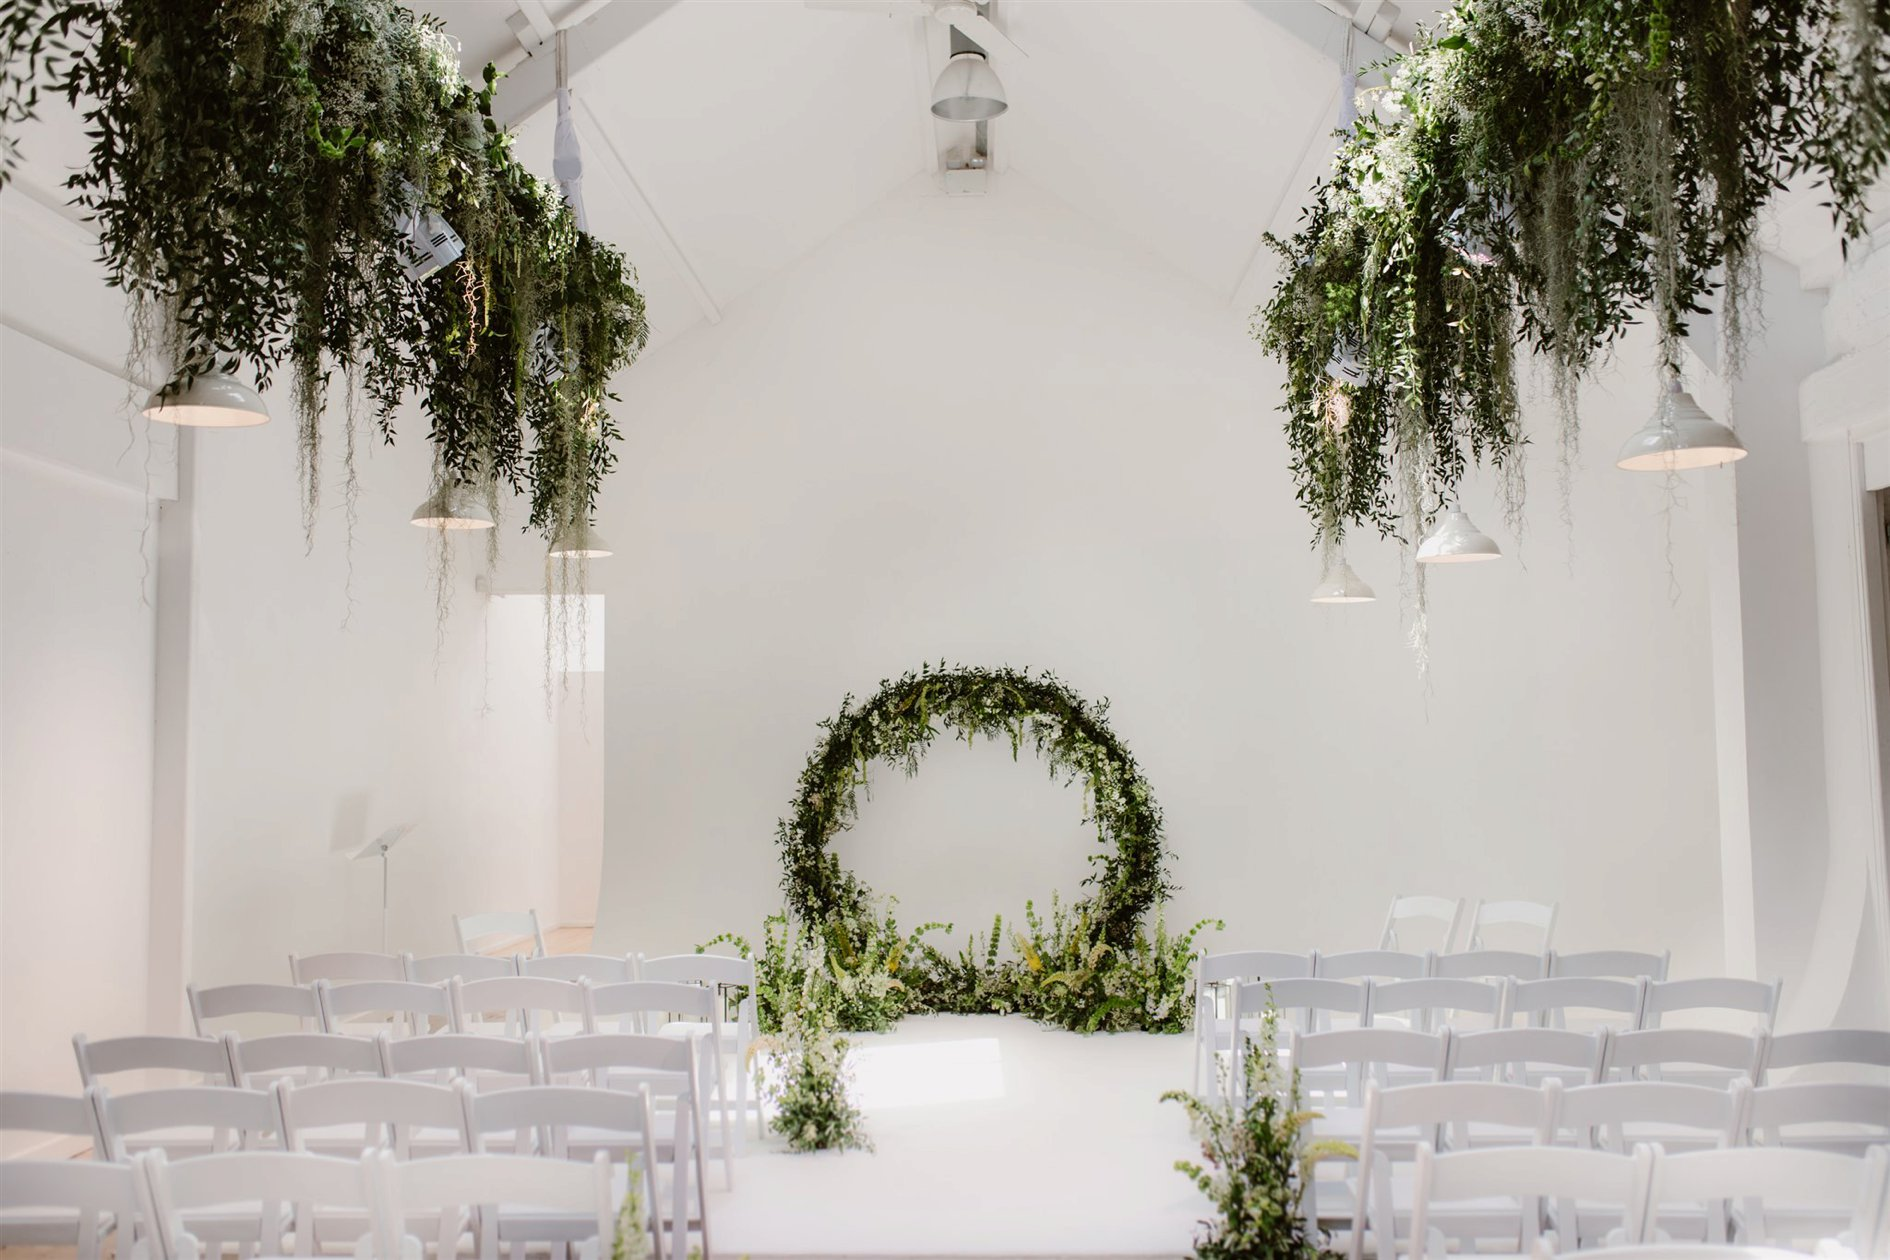 Inner City Weddings Sheffield Weddings and Events Planning Styling 00004.jpg